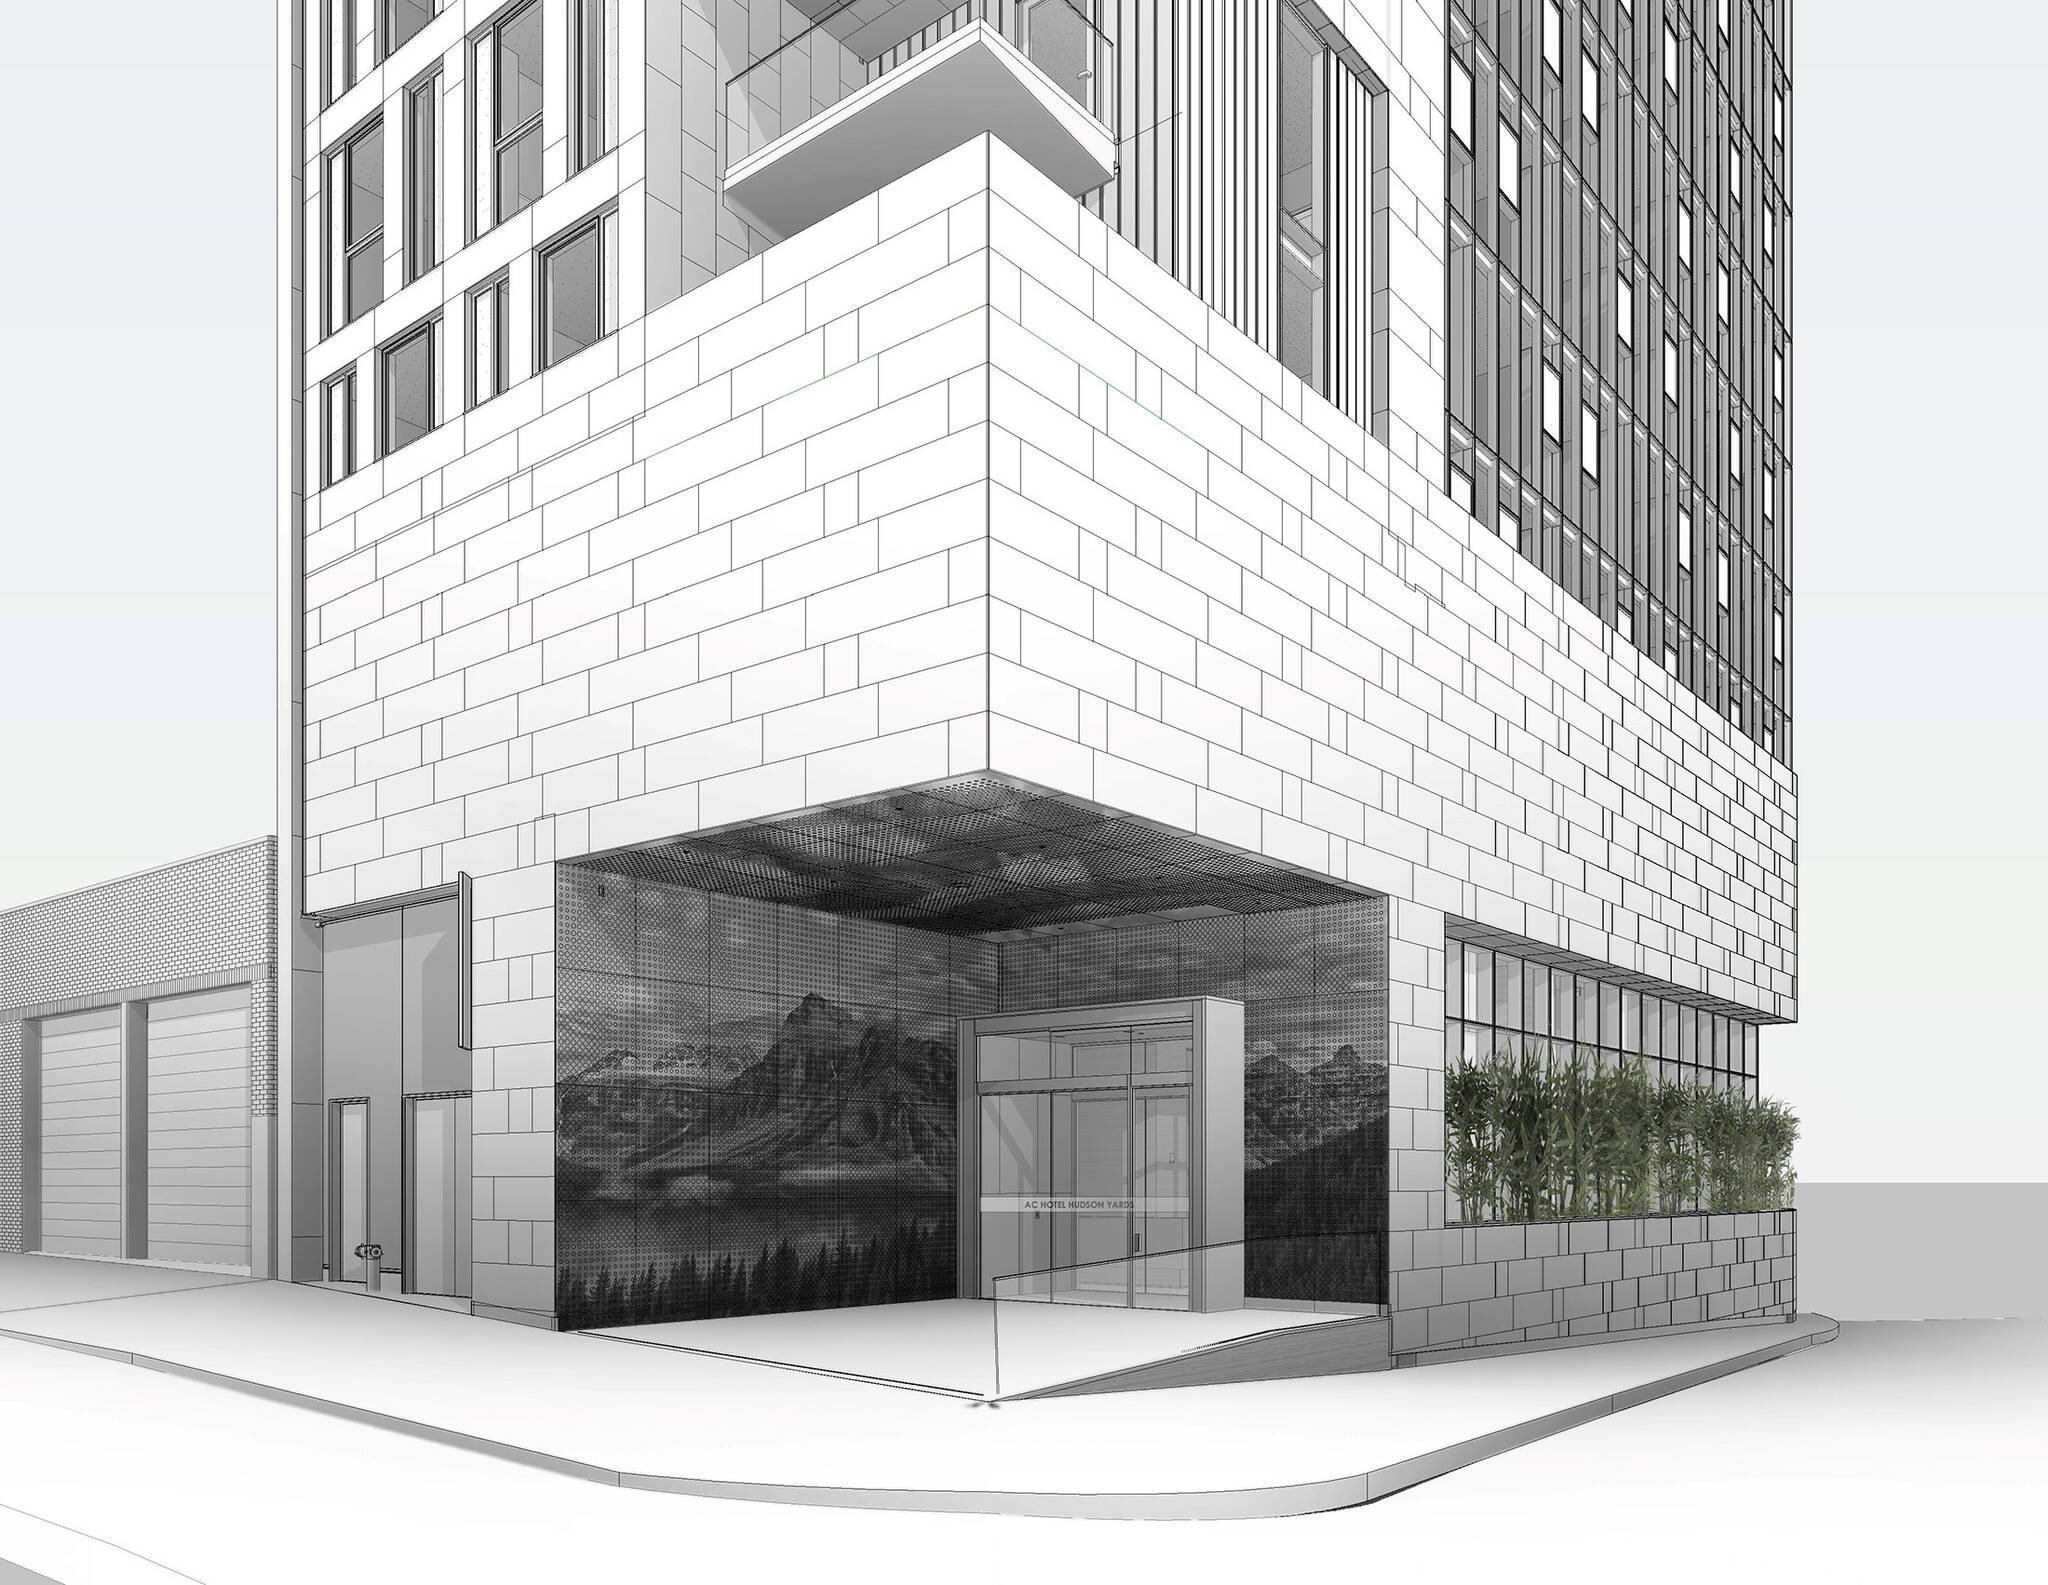 Entrance perspective drawing of the Hudson Yards Autograph Hotel project by Marriott, a modular hotel tower located at 432 West 31st Street in Hudson Yards, New York City designed by the architecture studio Danny Forster & Architecture